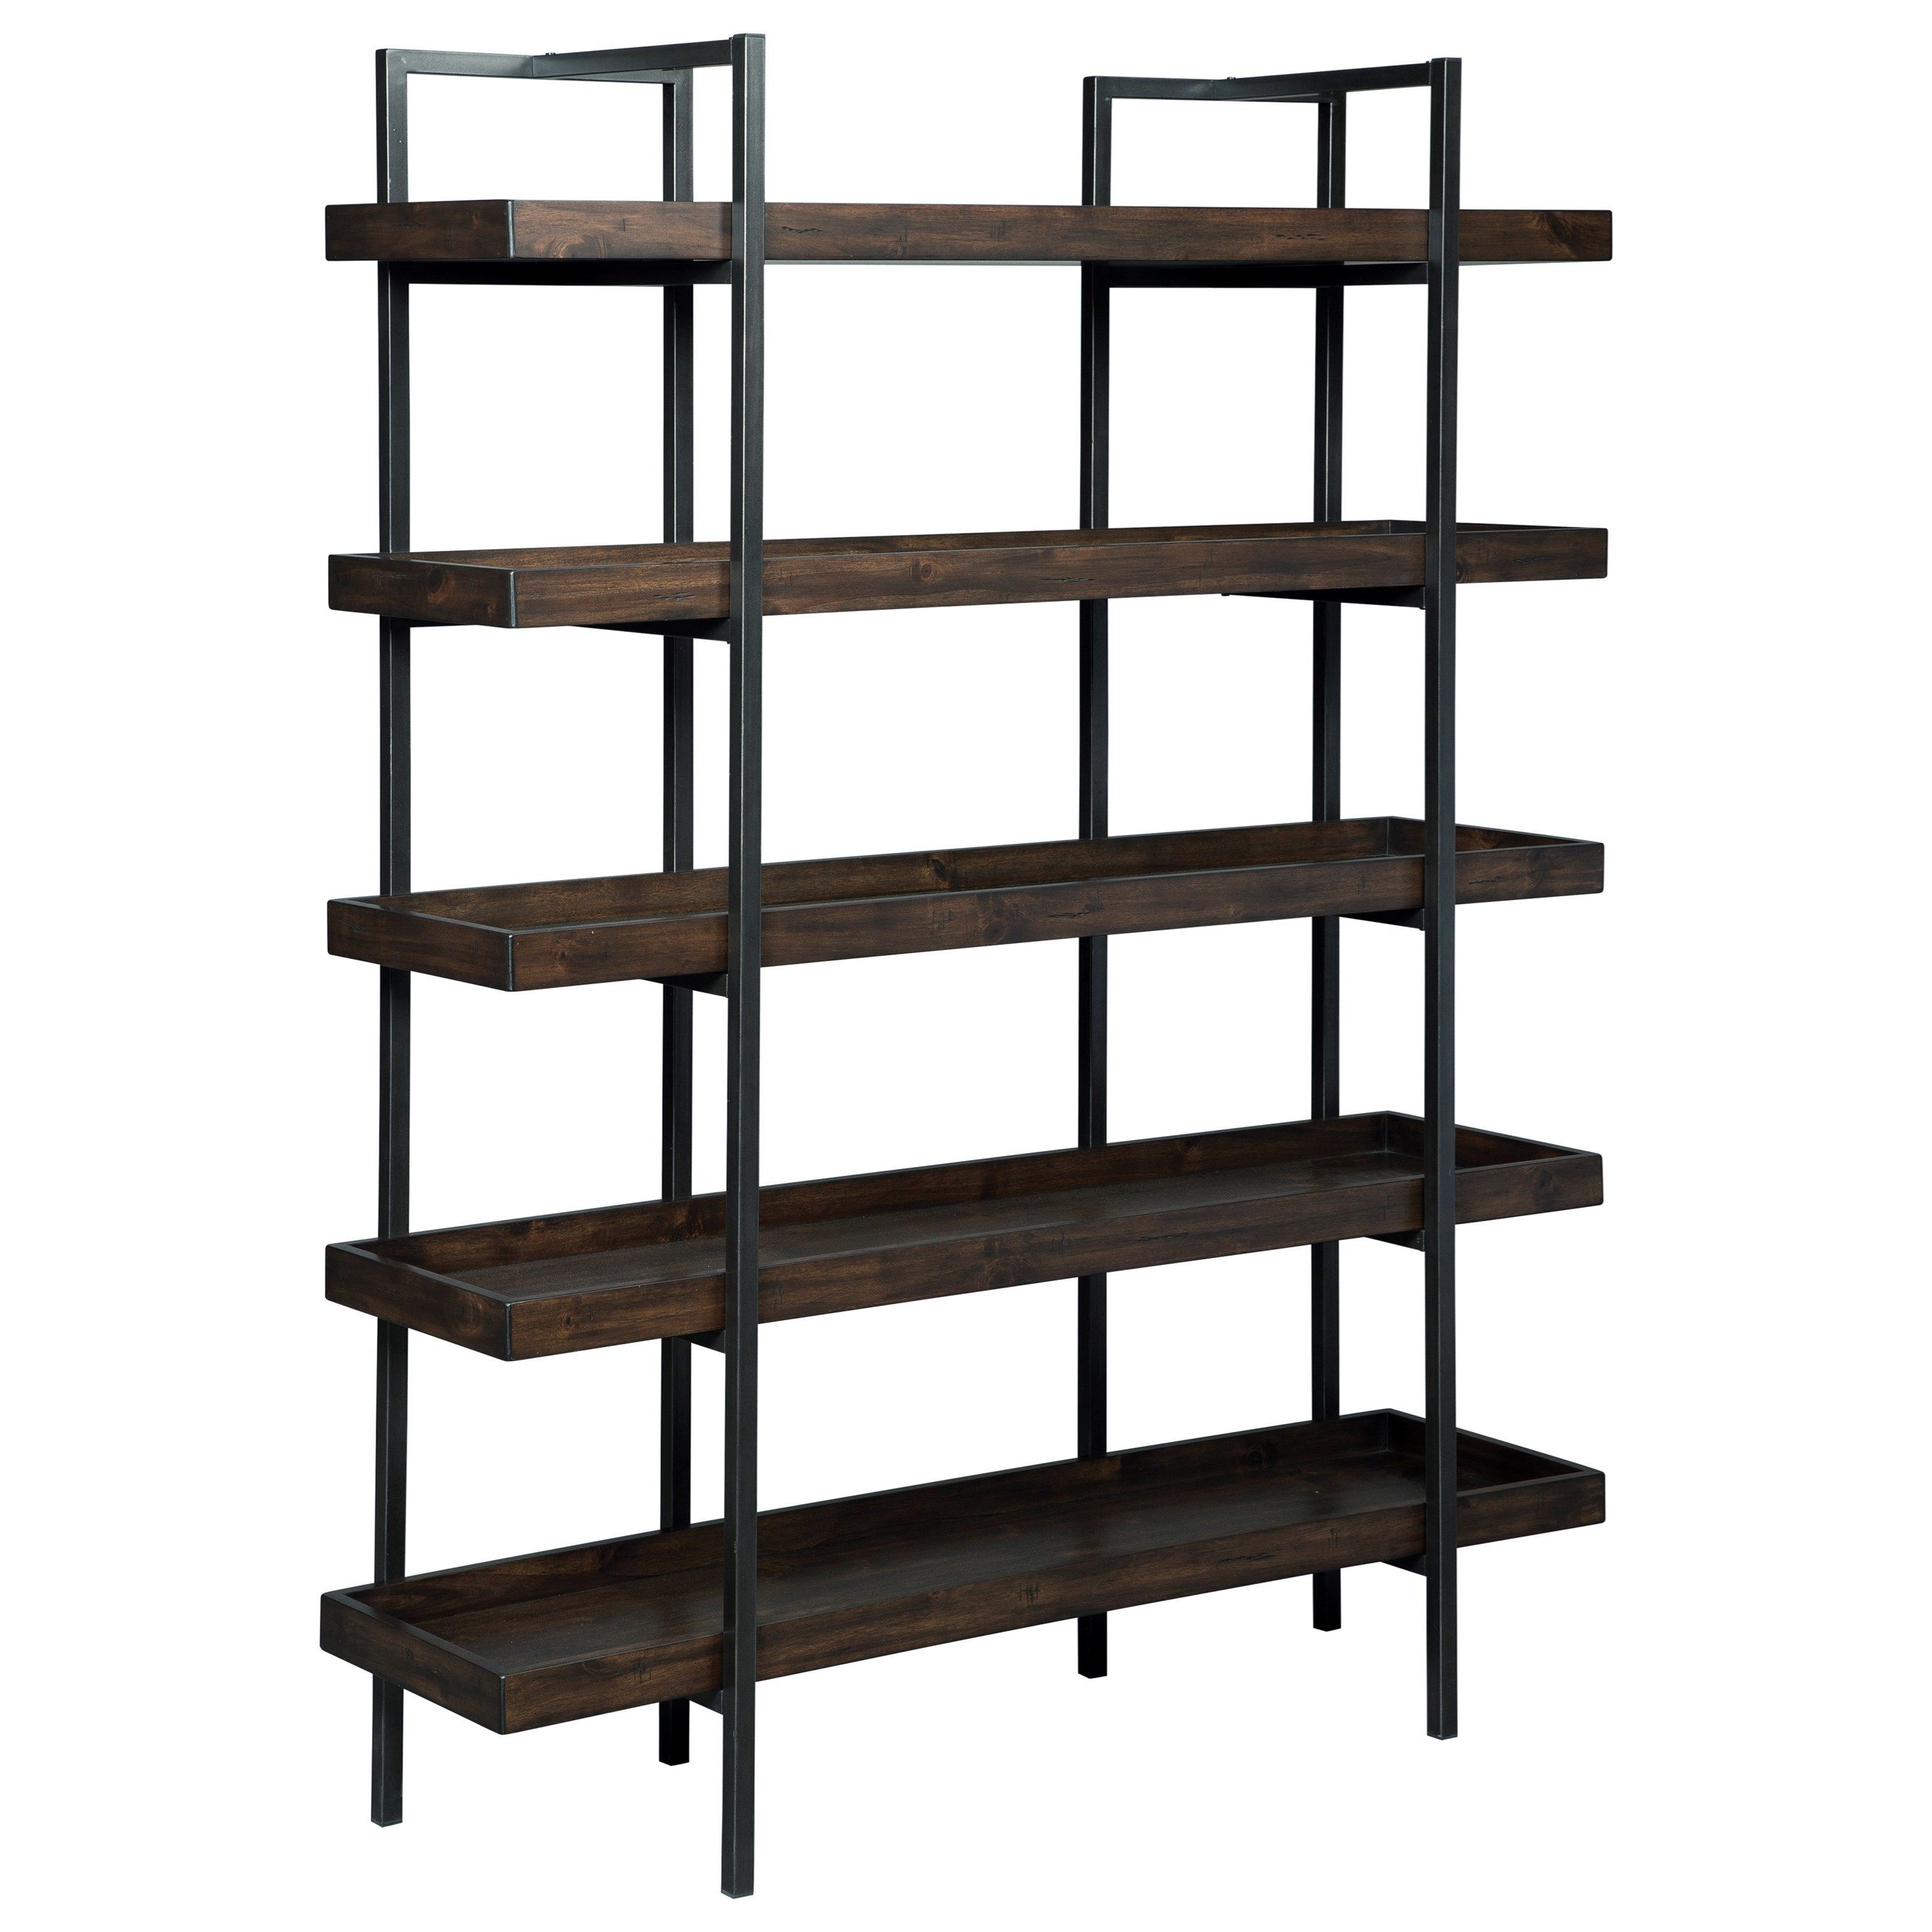 Starmore Bookcase By Signature Design Ashley Furniture Vs Crate And Barrel Becket Shelves